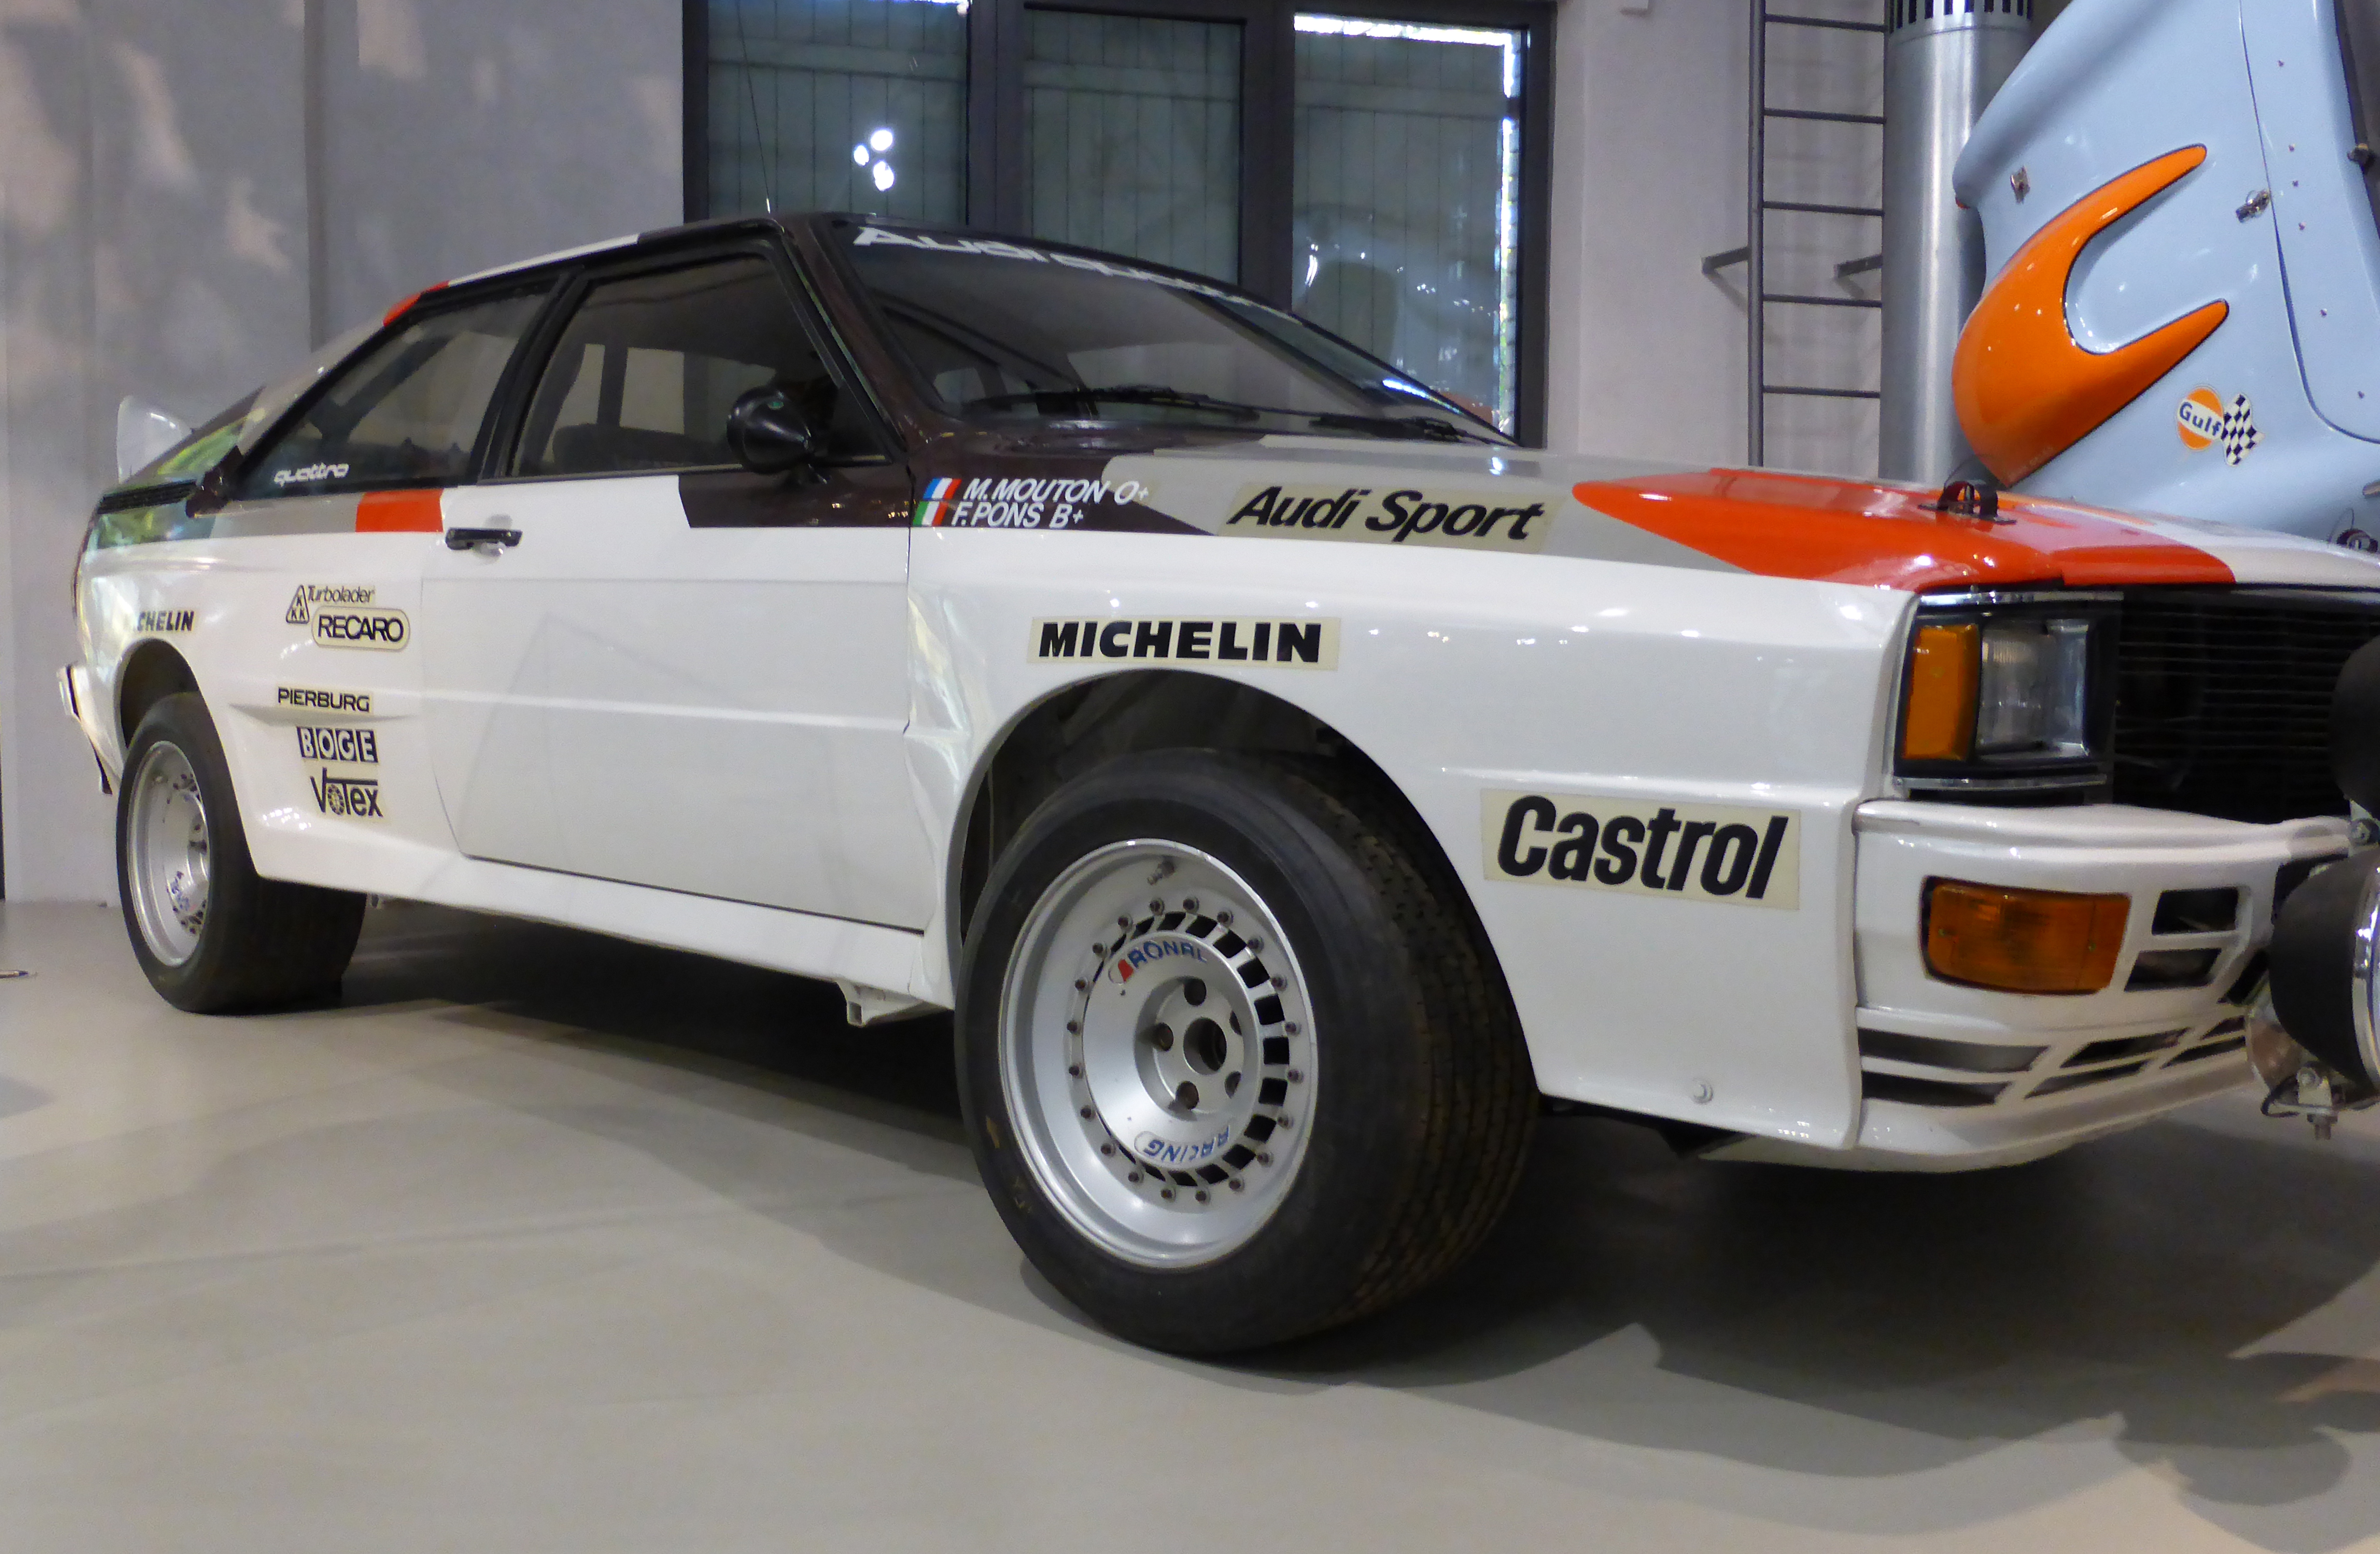 Audi Quattro Rally Library No. 1 Road and Rally cars + Mikkola Blomqvist 1980-83